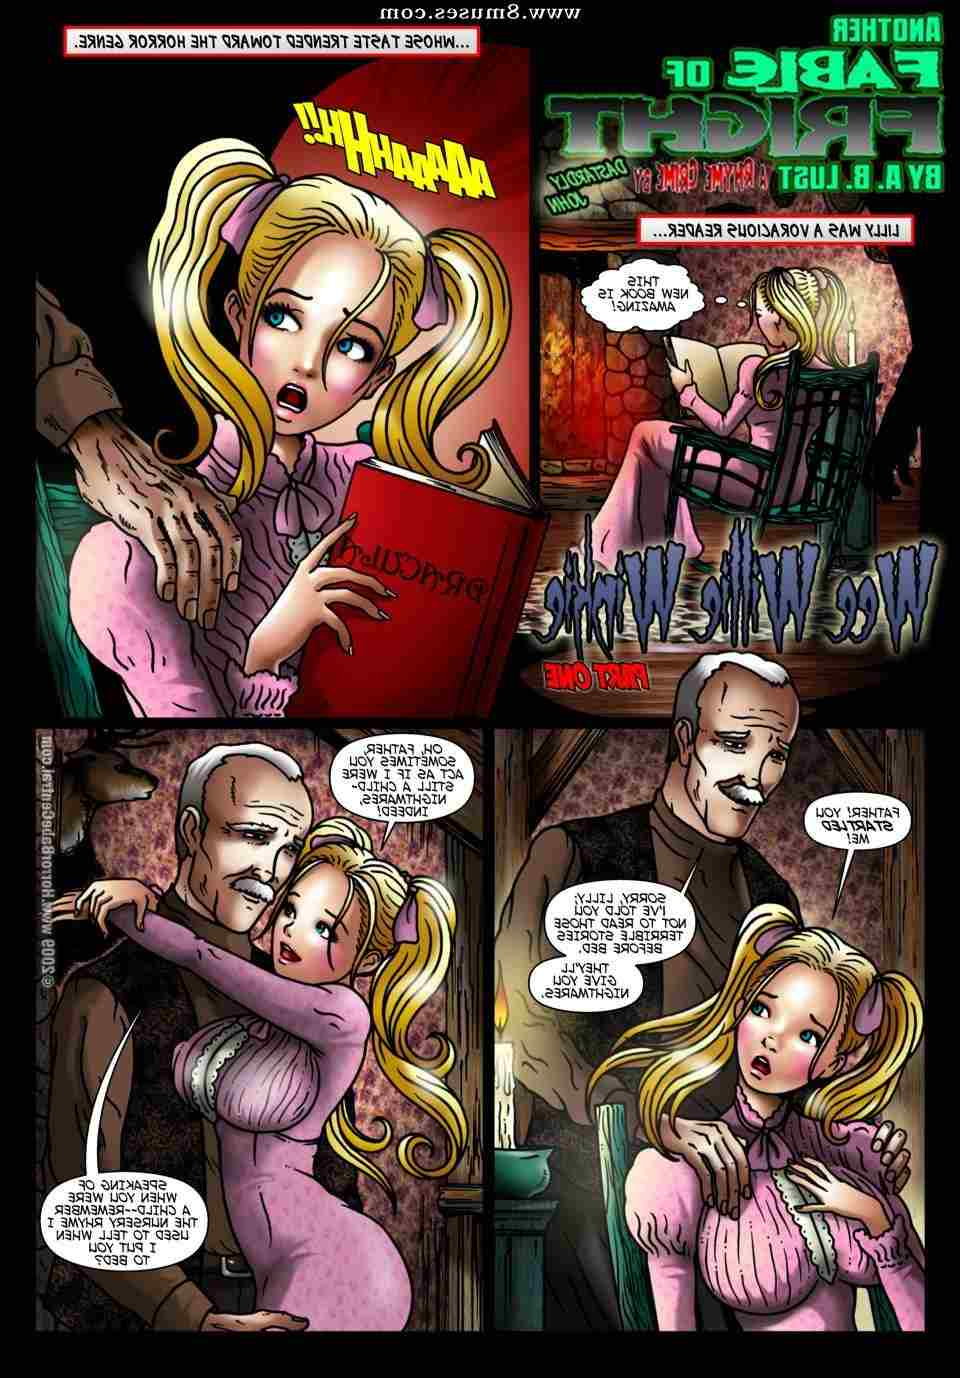 Central-Comics/Horror-Babe-Central/Fable-of-Fright Fable_of_Fright__8muses_-_Sex_and_Porn_Comics_137.jpg